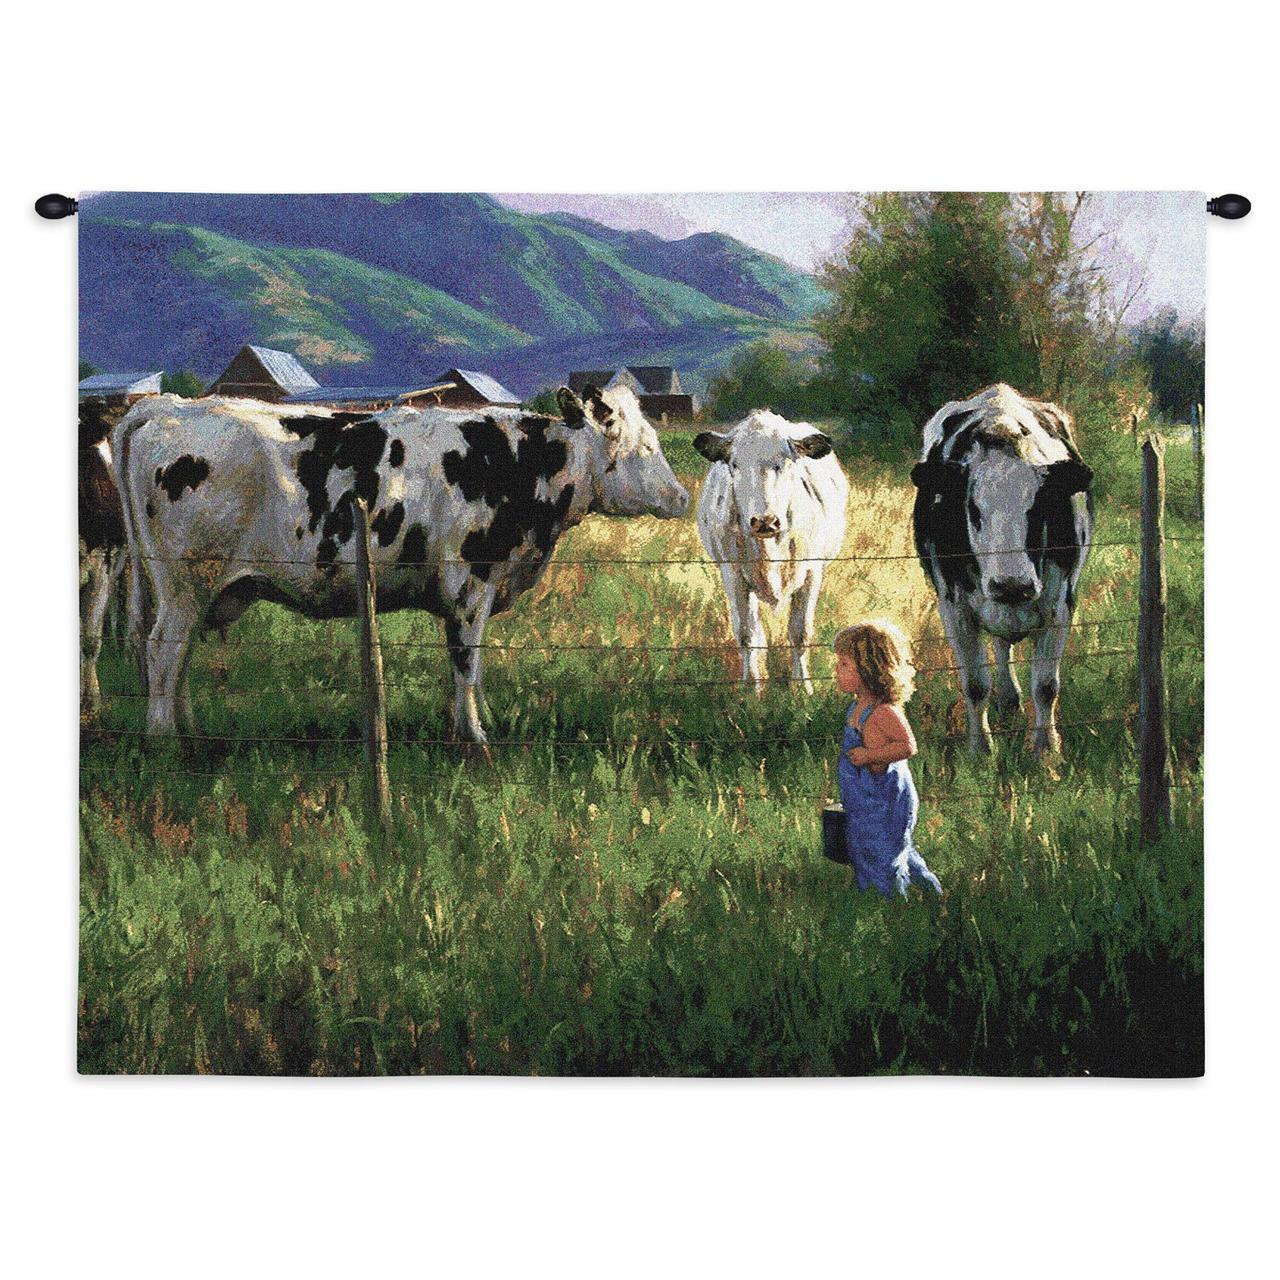 Tapestry-Wall Hanging-34 x 26-Country Life-Walk Among the Cows